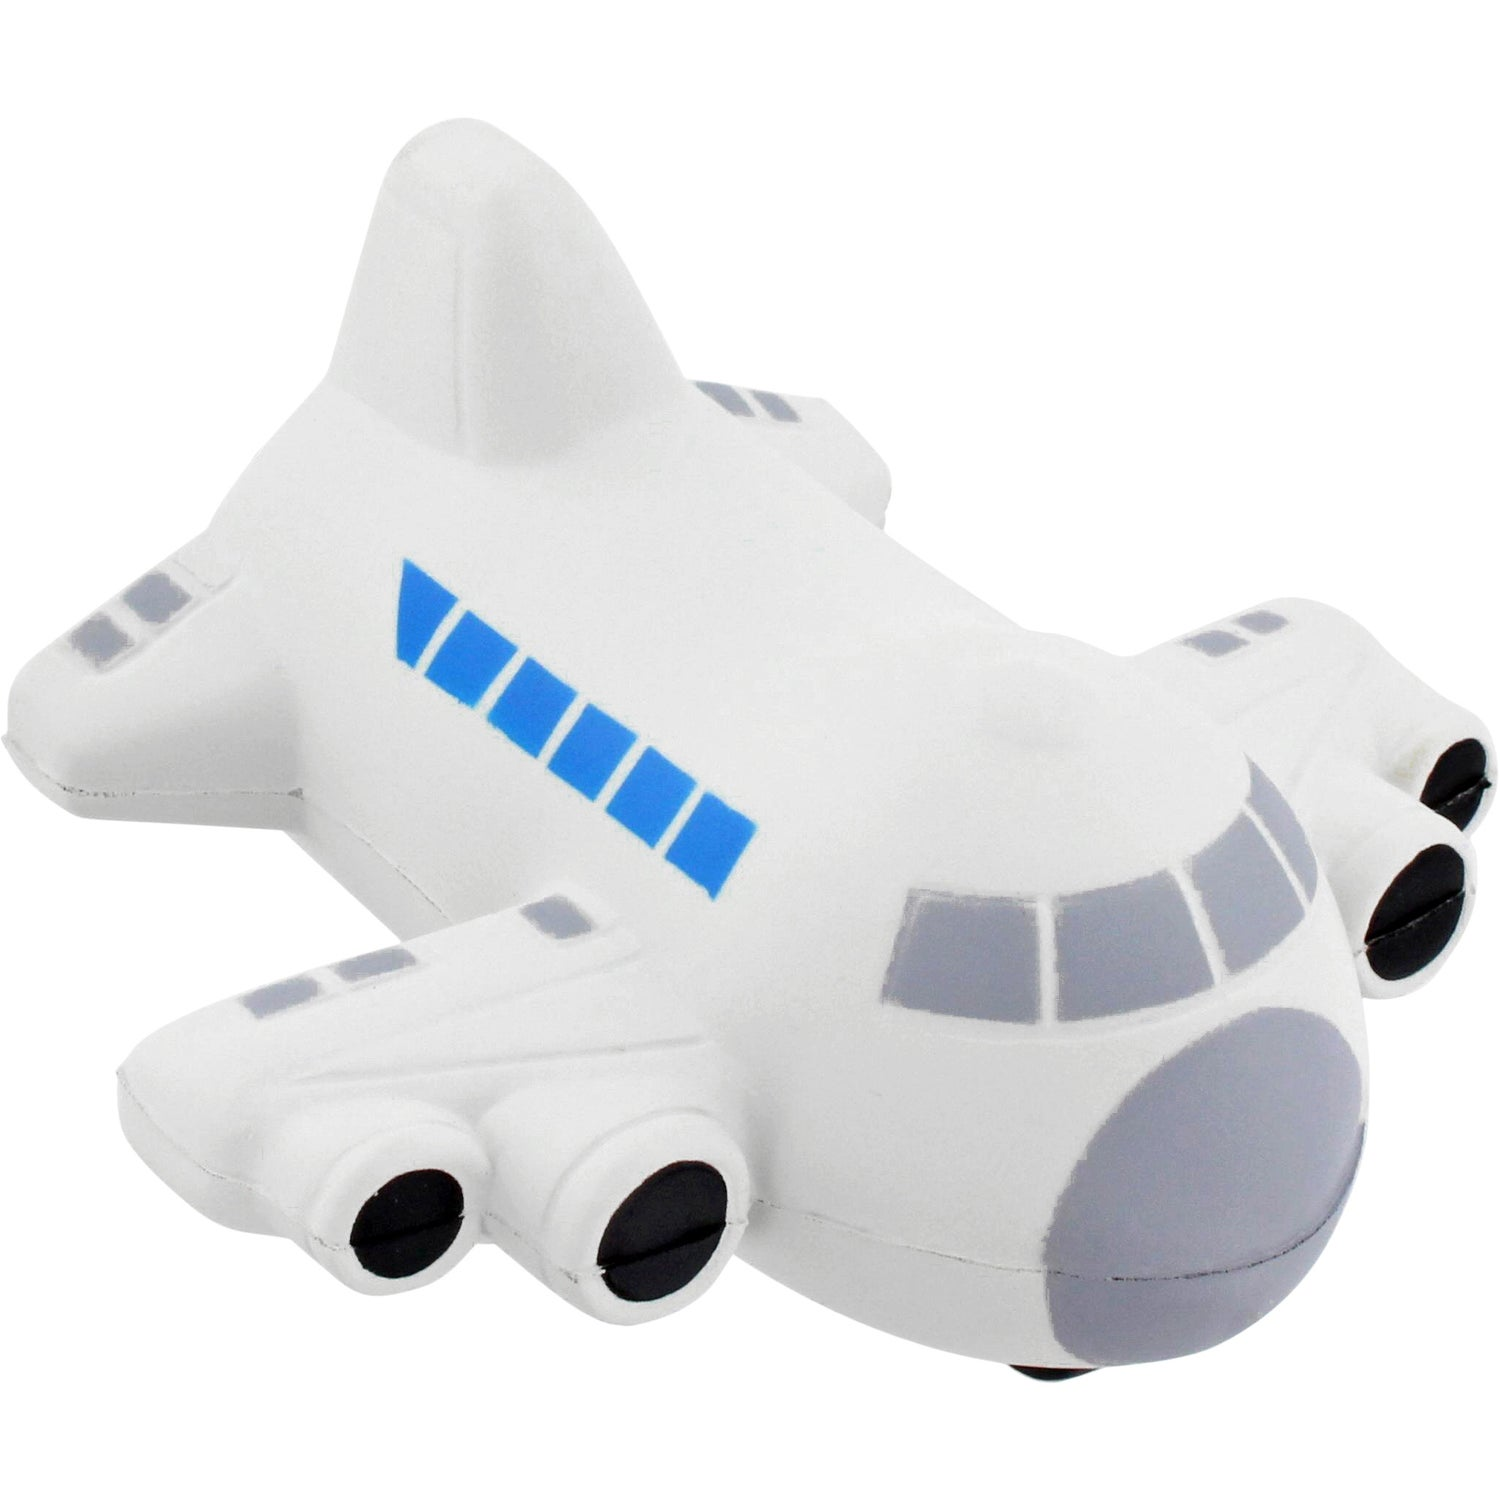 Small Airplane Stress Ball